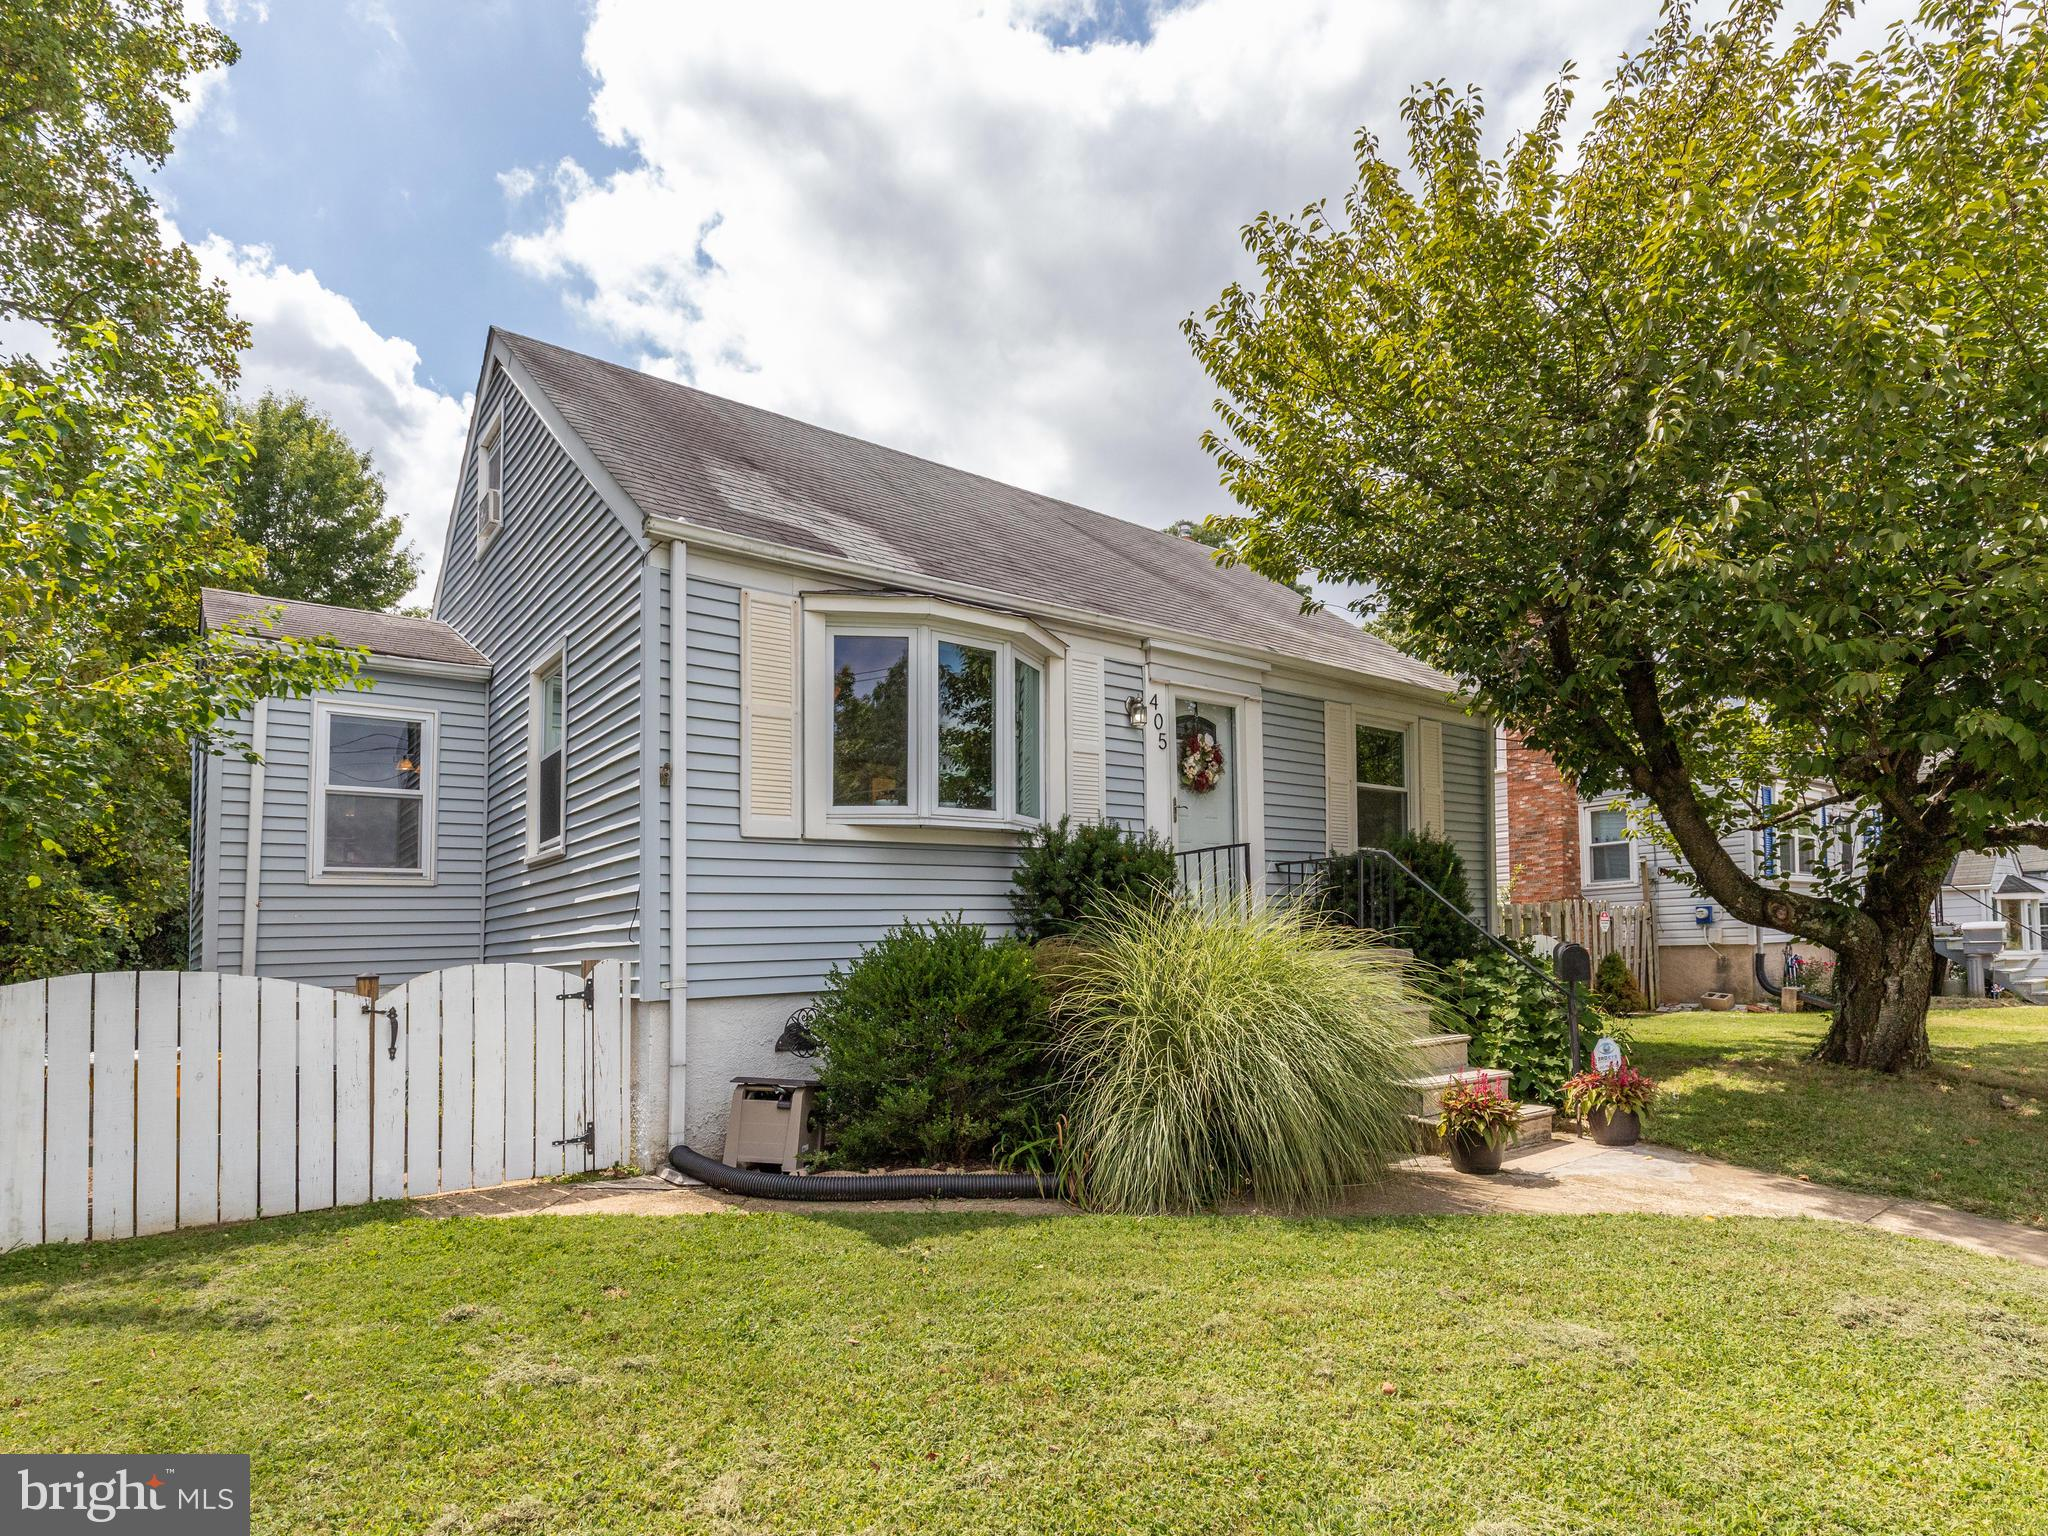 405 NANCY AVENUE, LINTHICUM, MD 21090